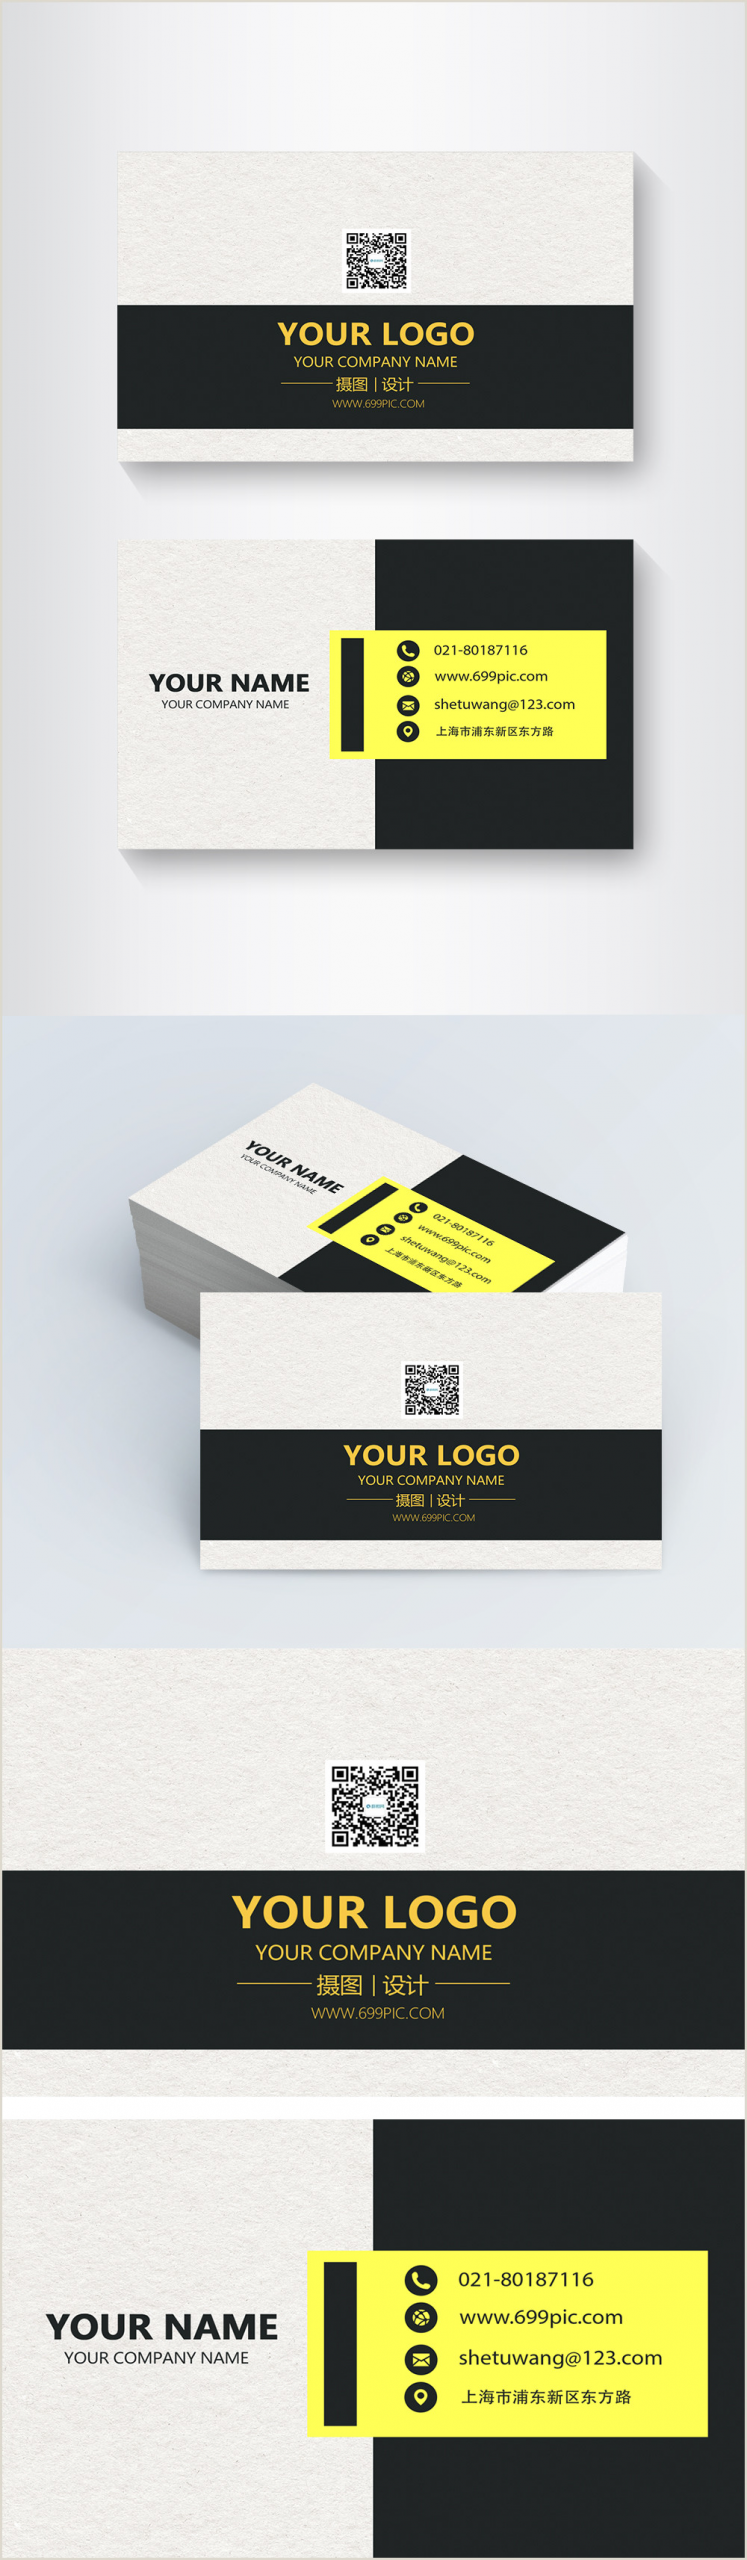 Black And Yellow Business Cards Black And Yellow Business Card Template Image Picture Free